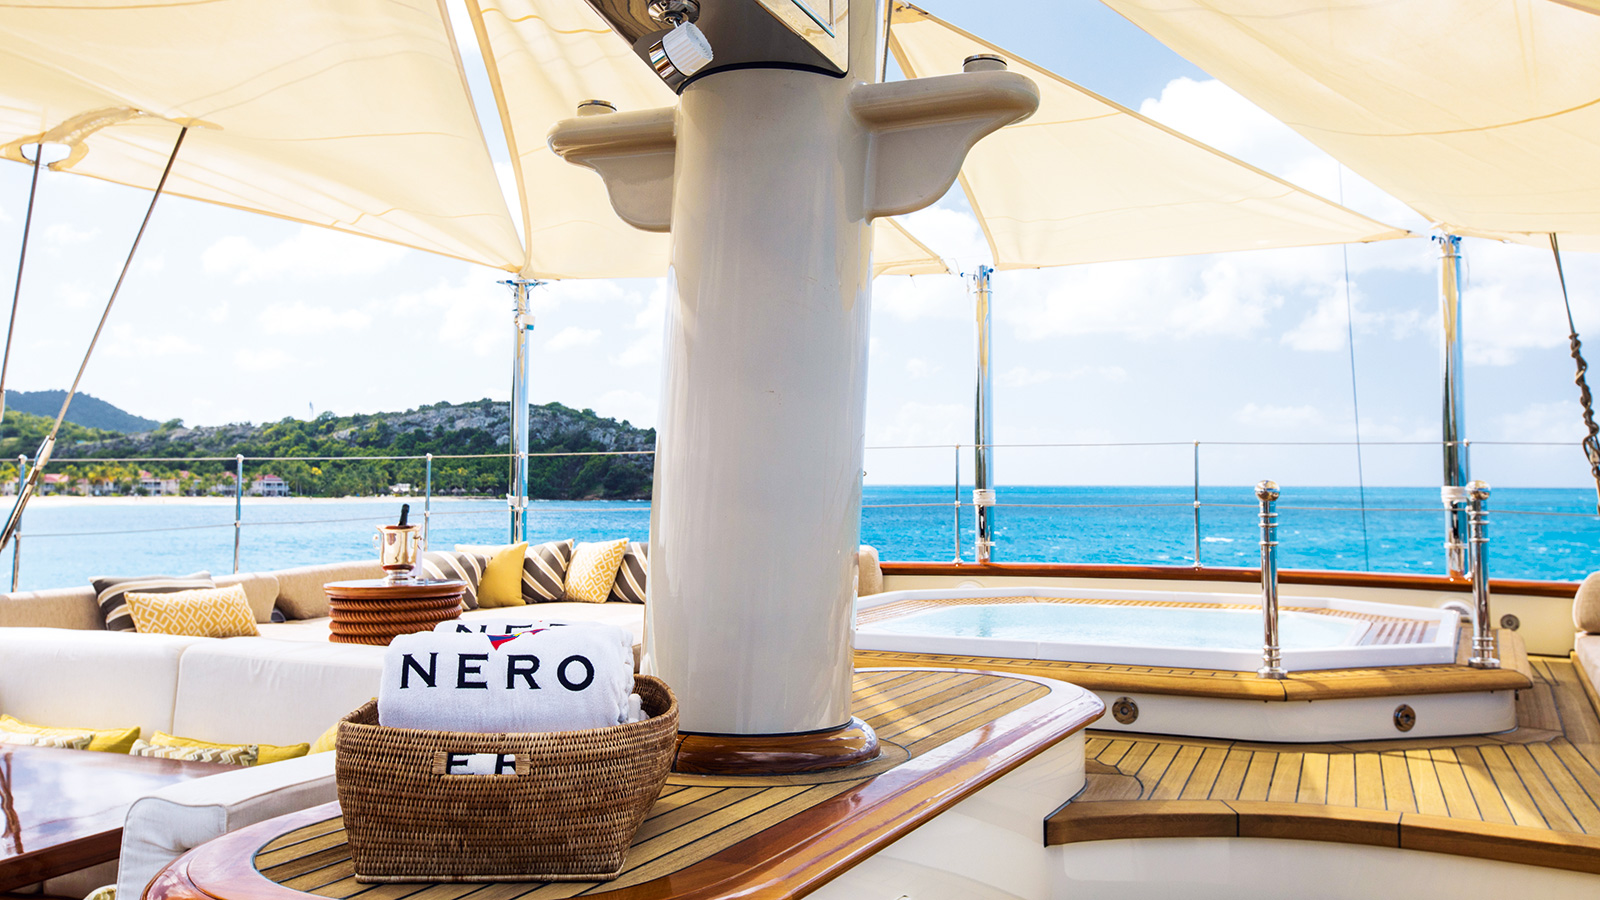 the-sundeck-of-the-modern-classic-yacht-nero-after-her-mb92-refit-credit-stuart-pearce